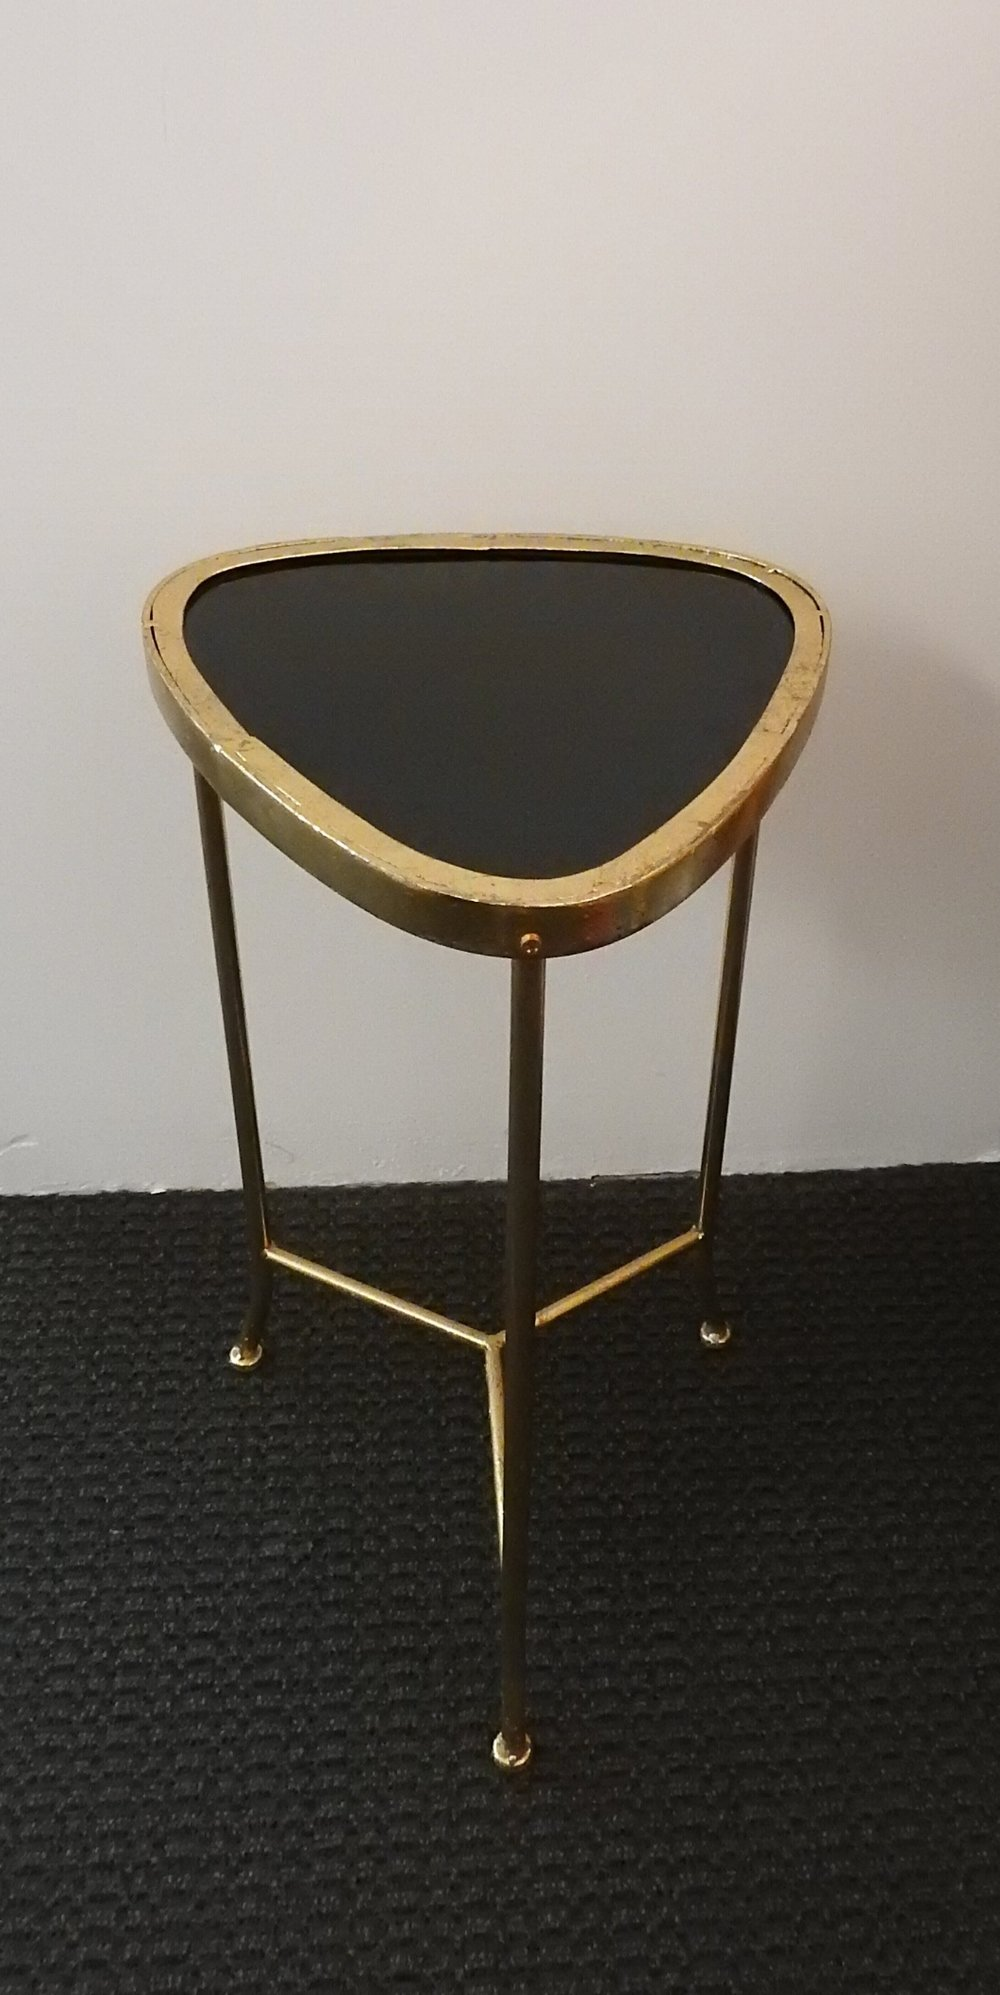 Black + Gold Geometric Table - (1)